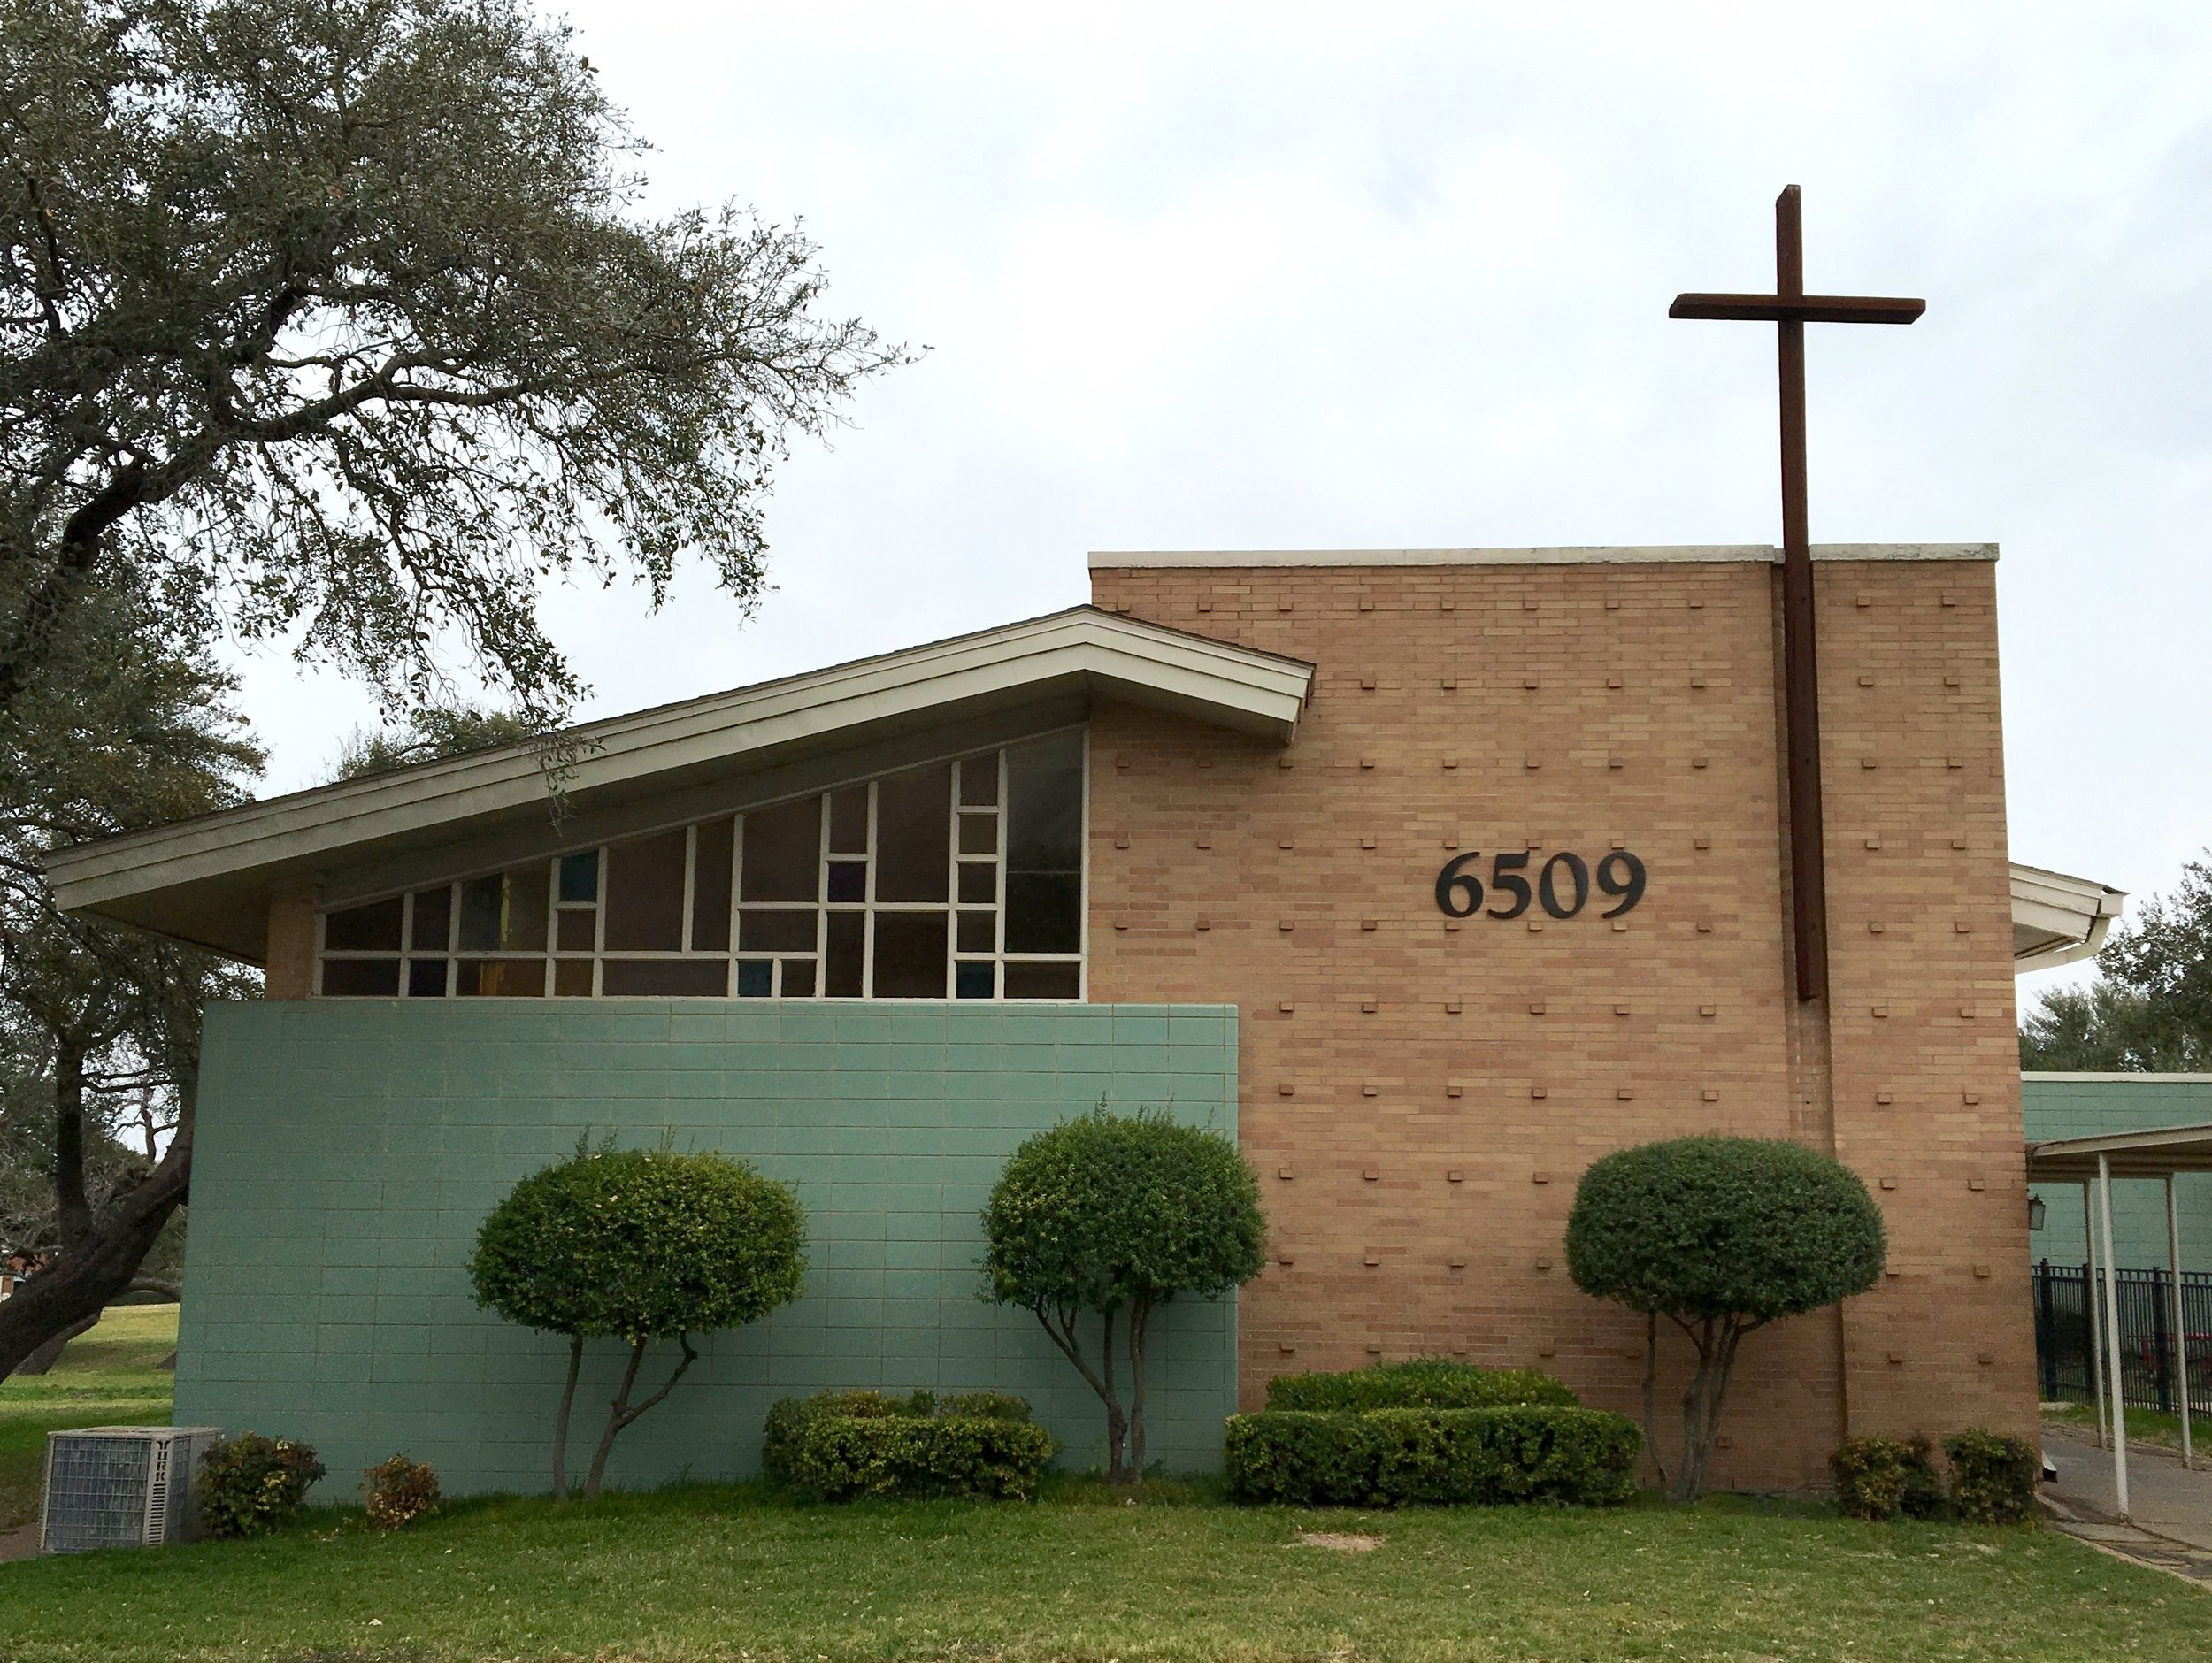 Lakewood_Christian_Church_Midcentury_Modern.jpg